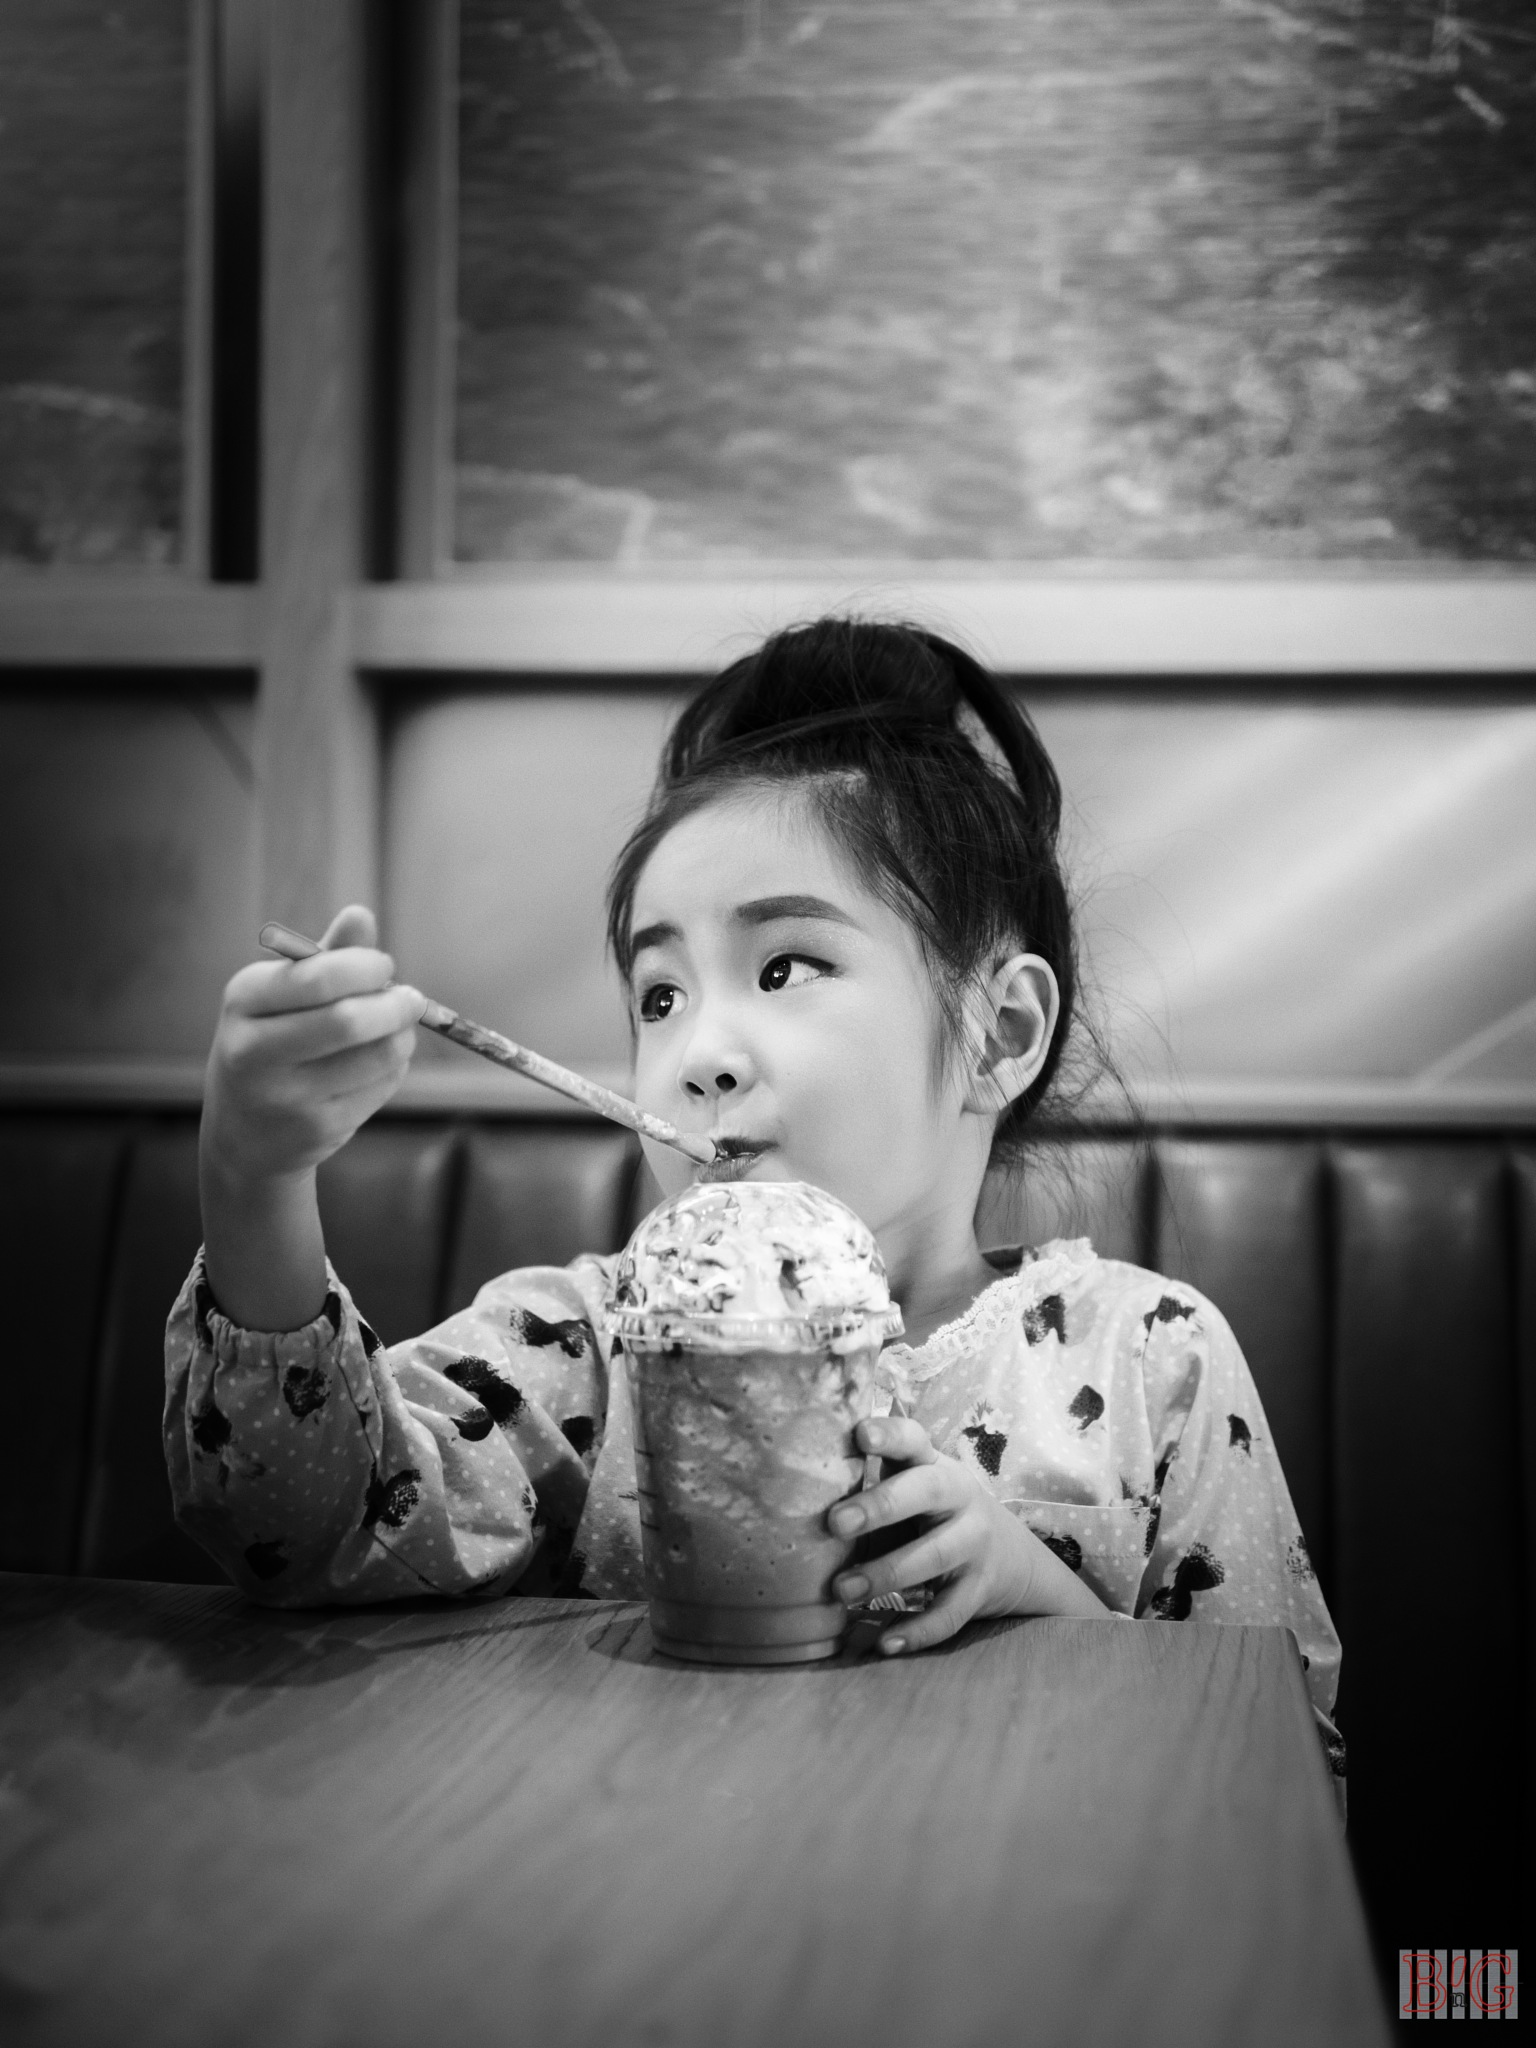 Iced chocolate in Black and White by jennymissu